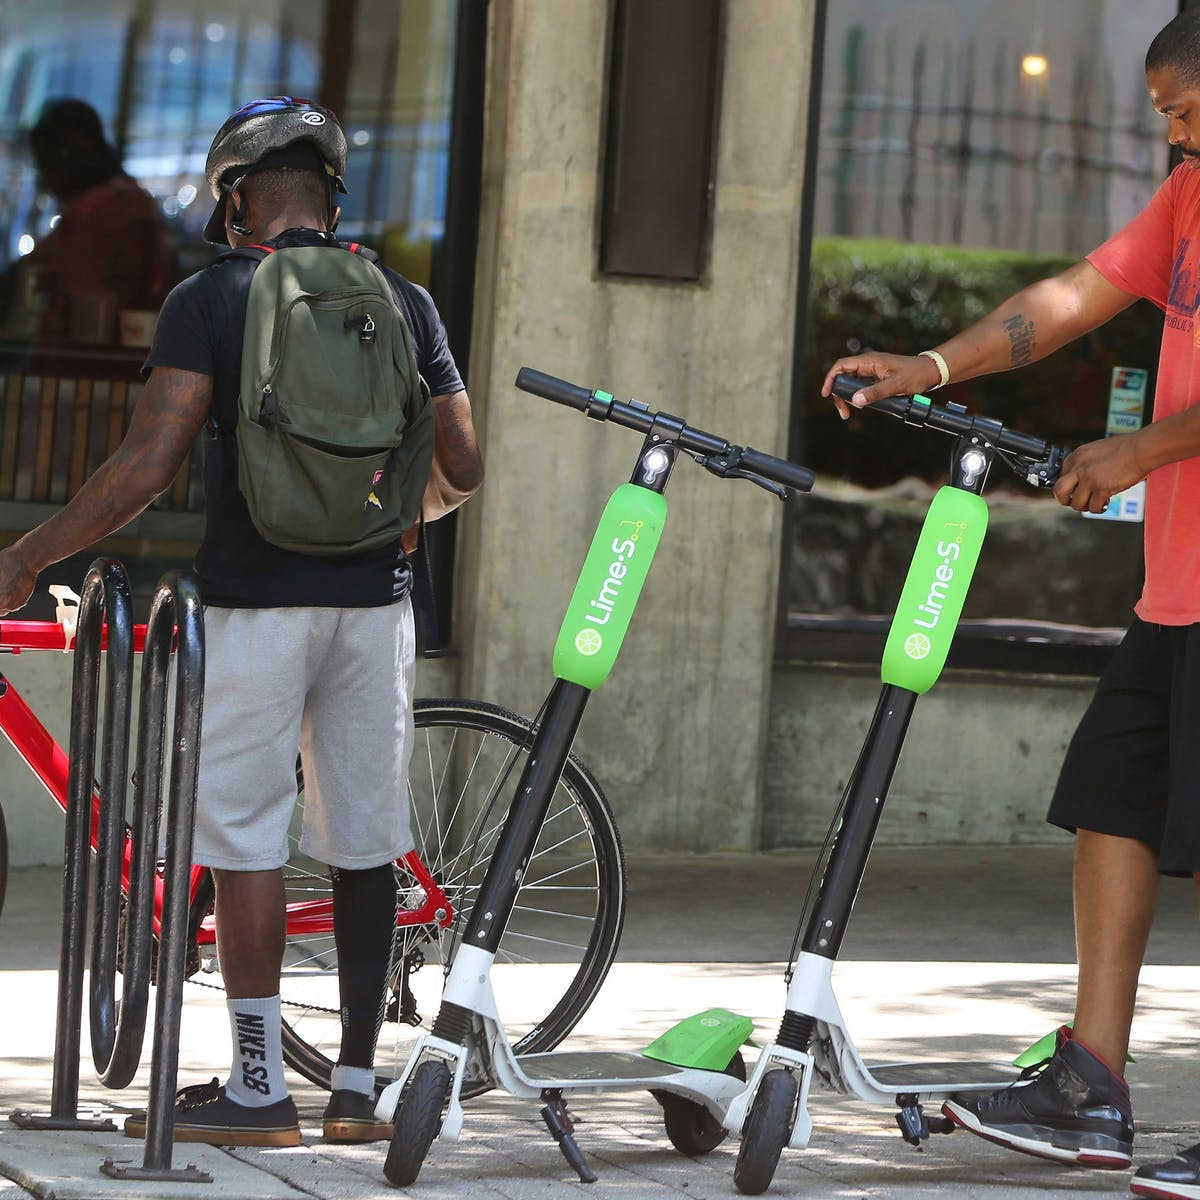 Electric scooters on collision course with pedestrians and